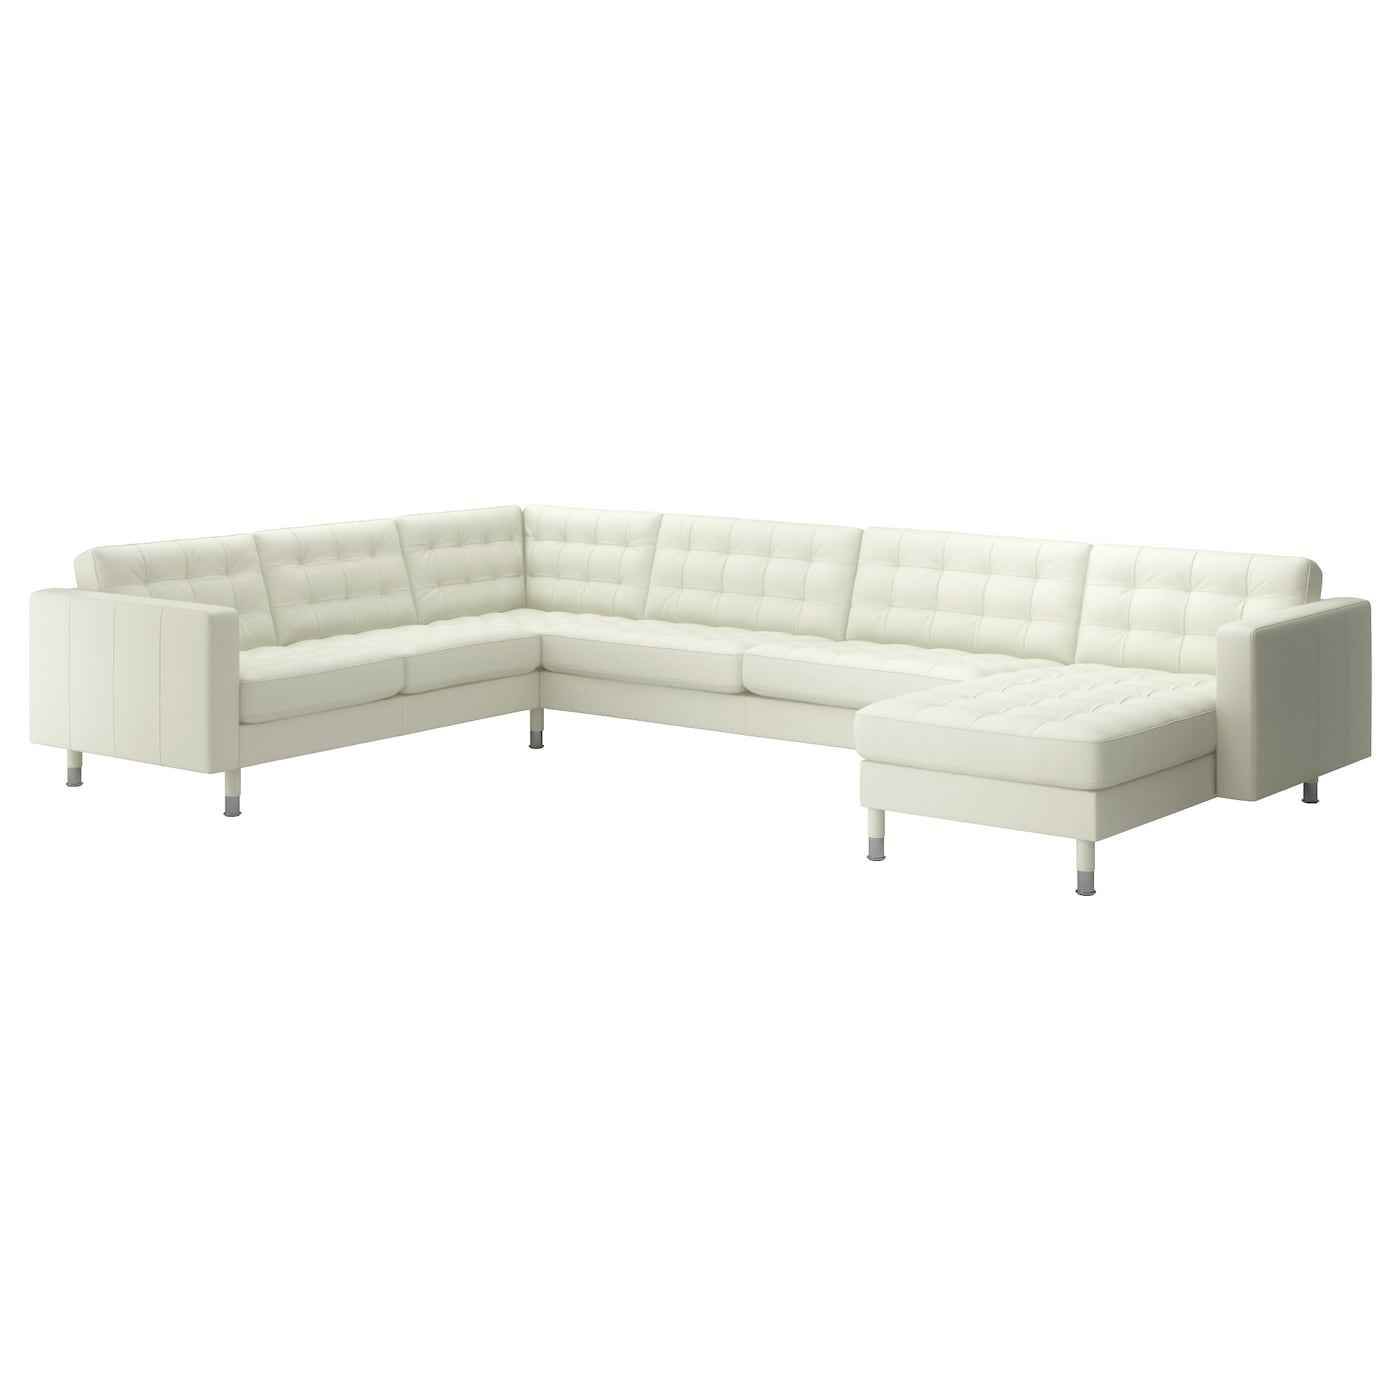 Landskrona corner sofa 23 32 and chaise longue grann for Chaise longue jardin ikea